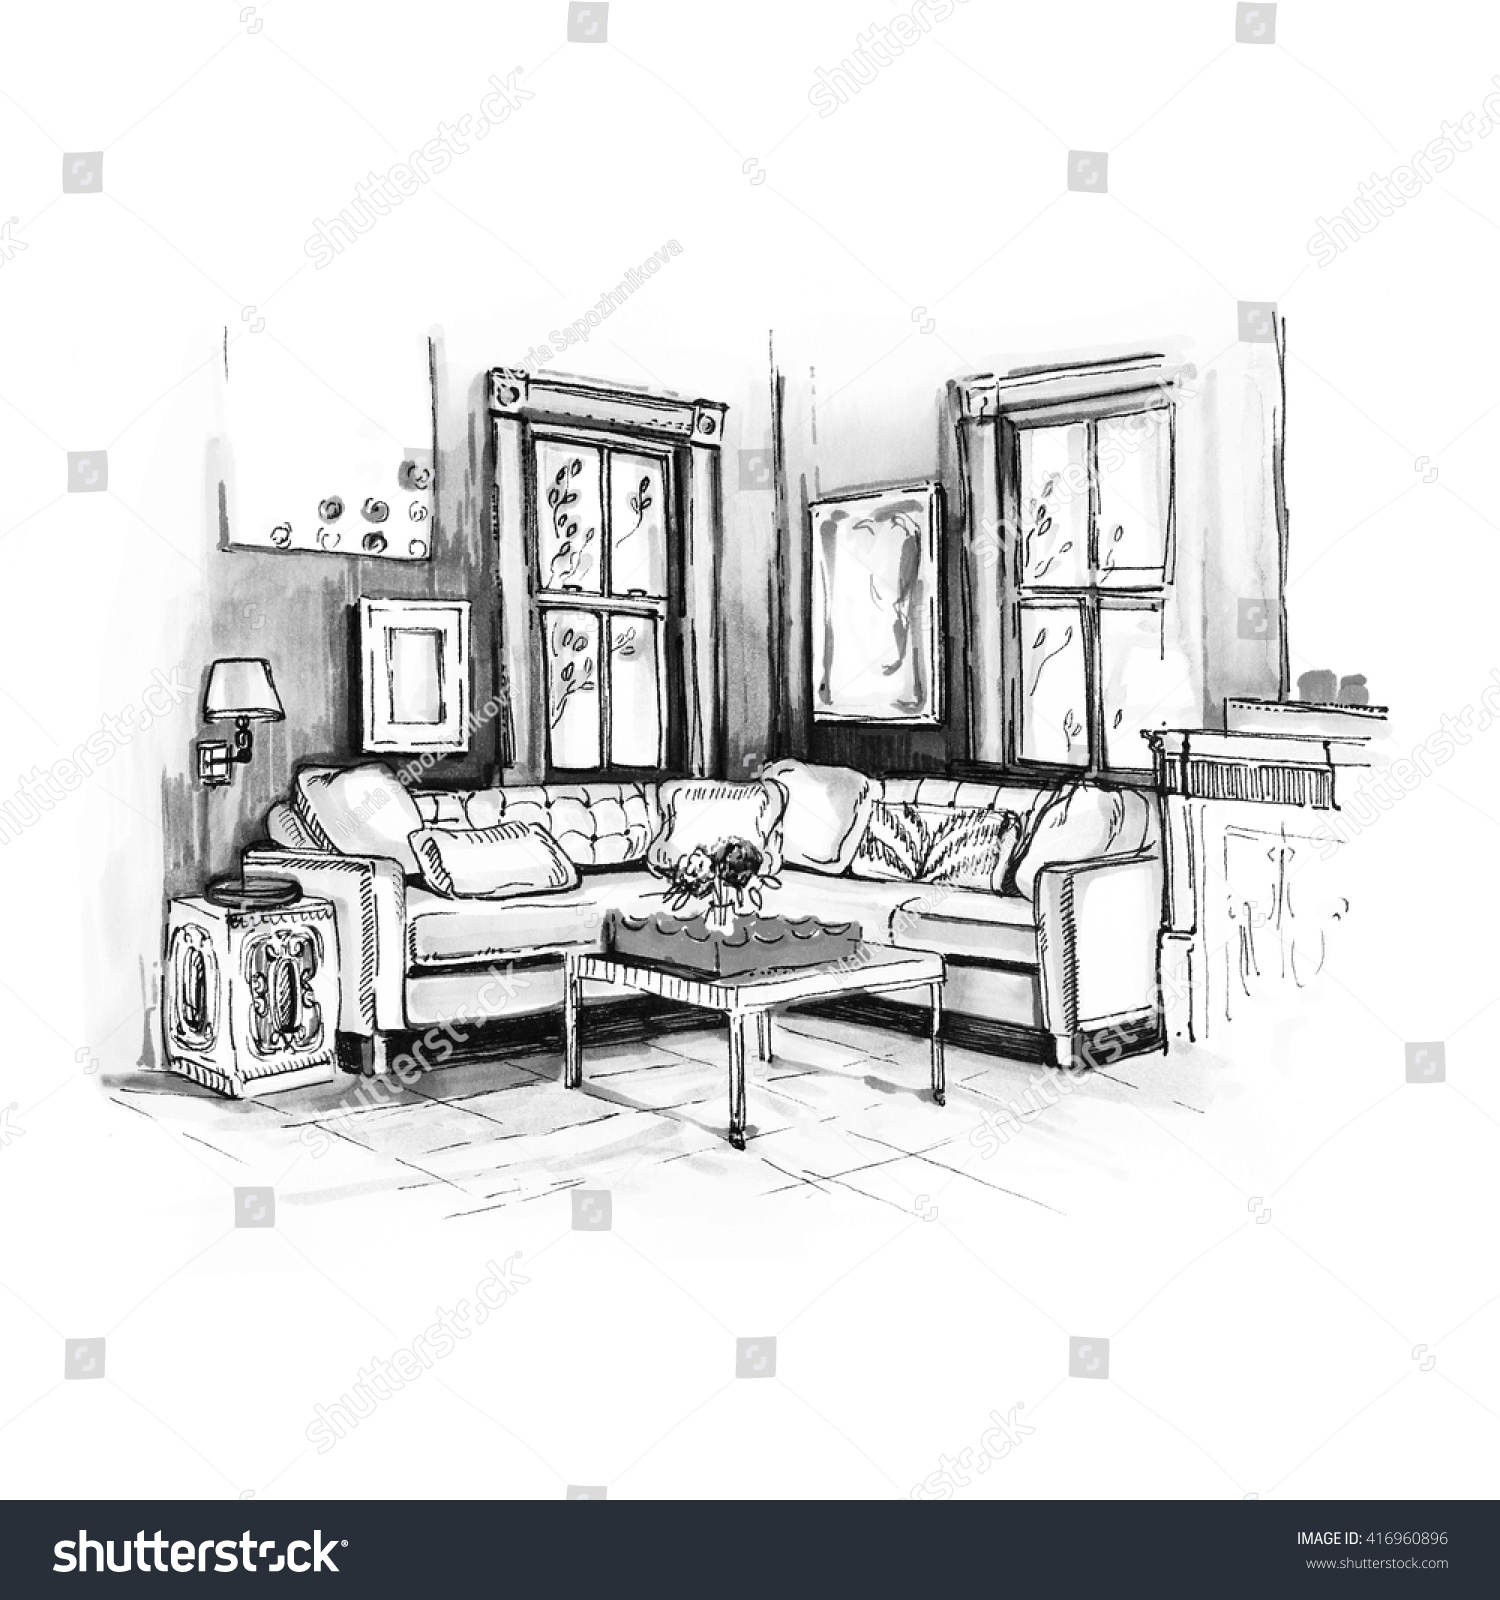 Modern interior of room with sofa and two windows on wall background sketch trendy contemporary